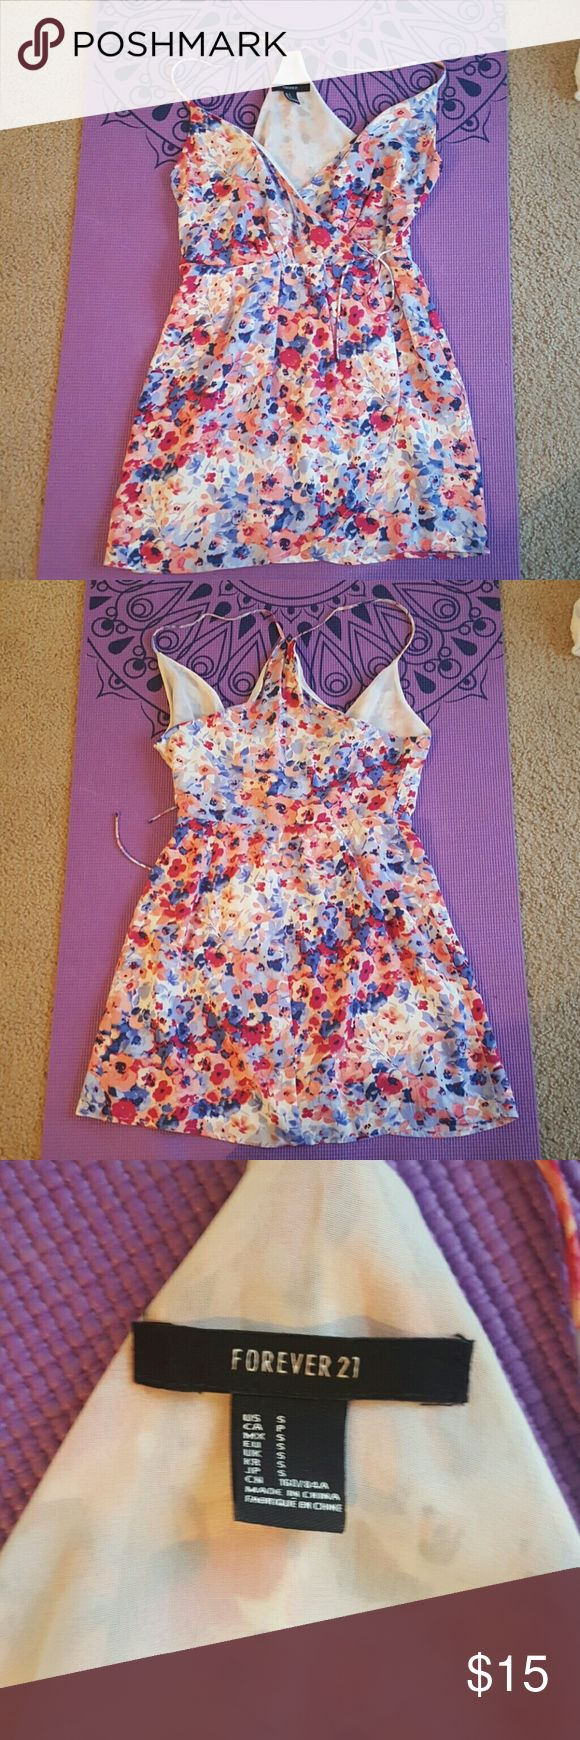 Summer Dress Summer dress with side tie and flower design. Worn for graduation ceremony. Forever 21 Dresses Mini